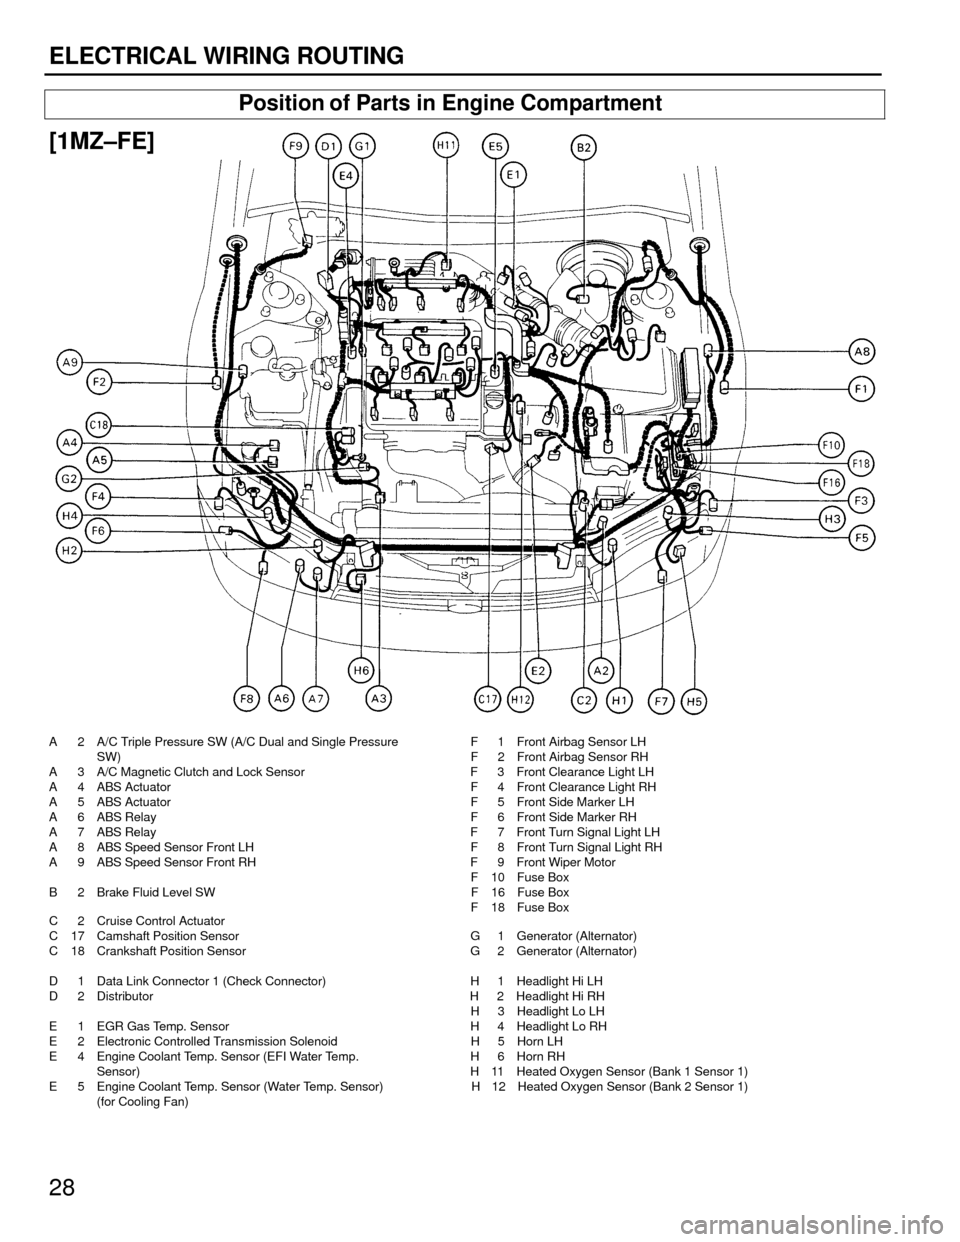 Airbag Toyota Camry 1994 Xv10 4g Wiring Diagrams Workshop